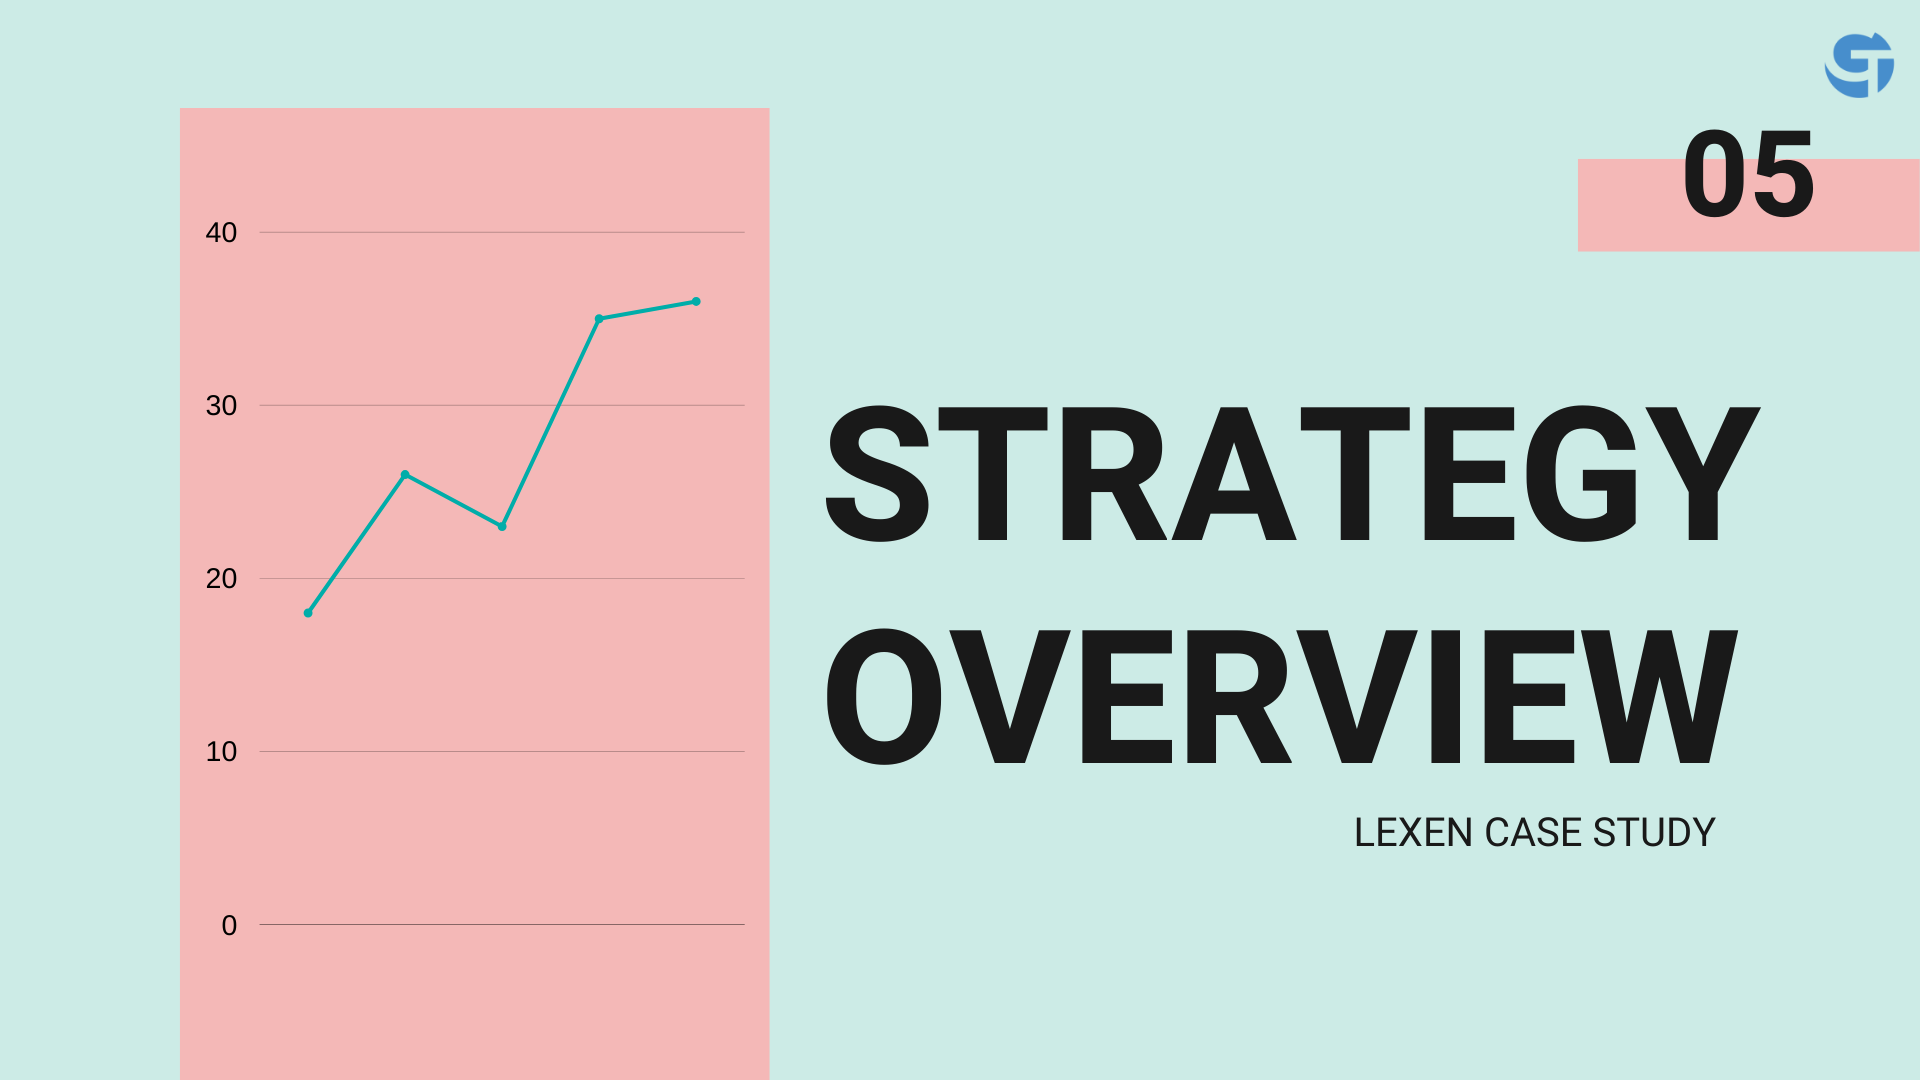 How Lexen hotel devised its strategy